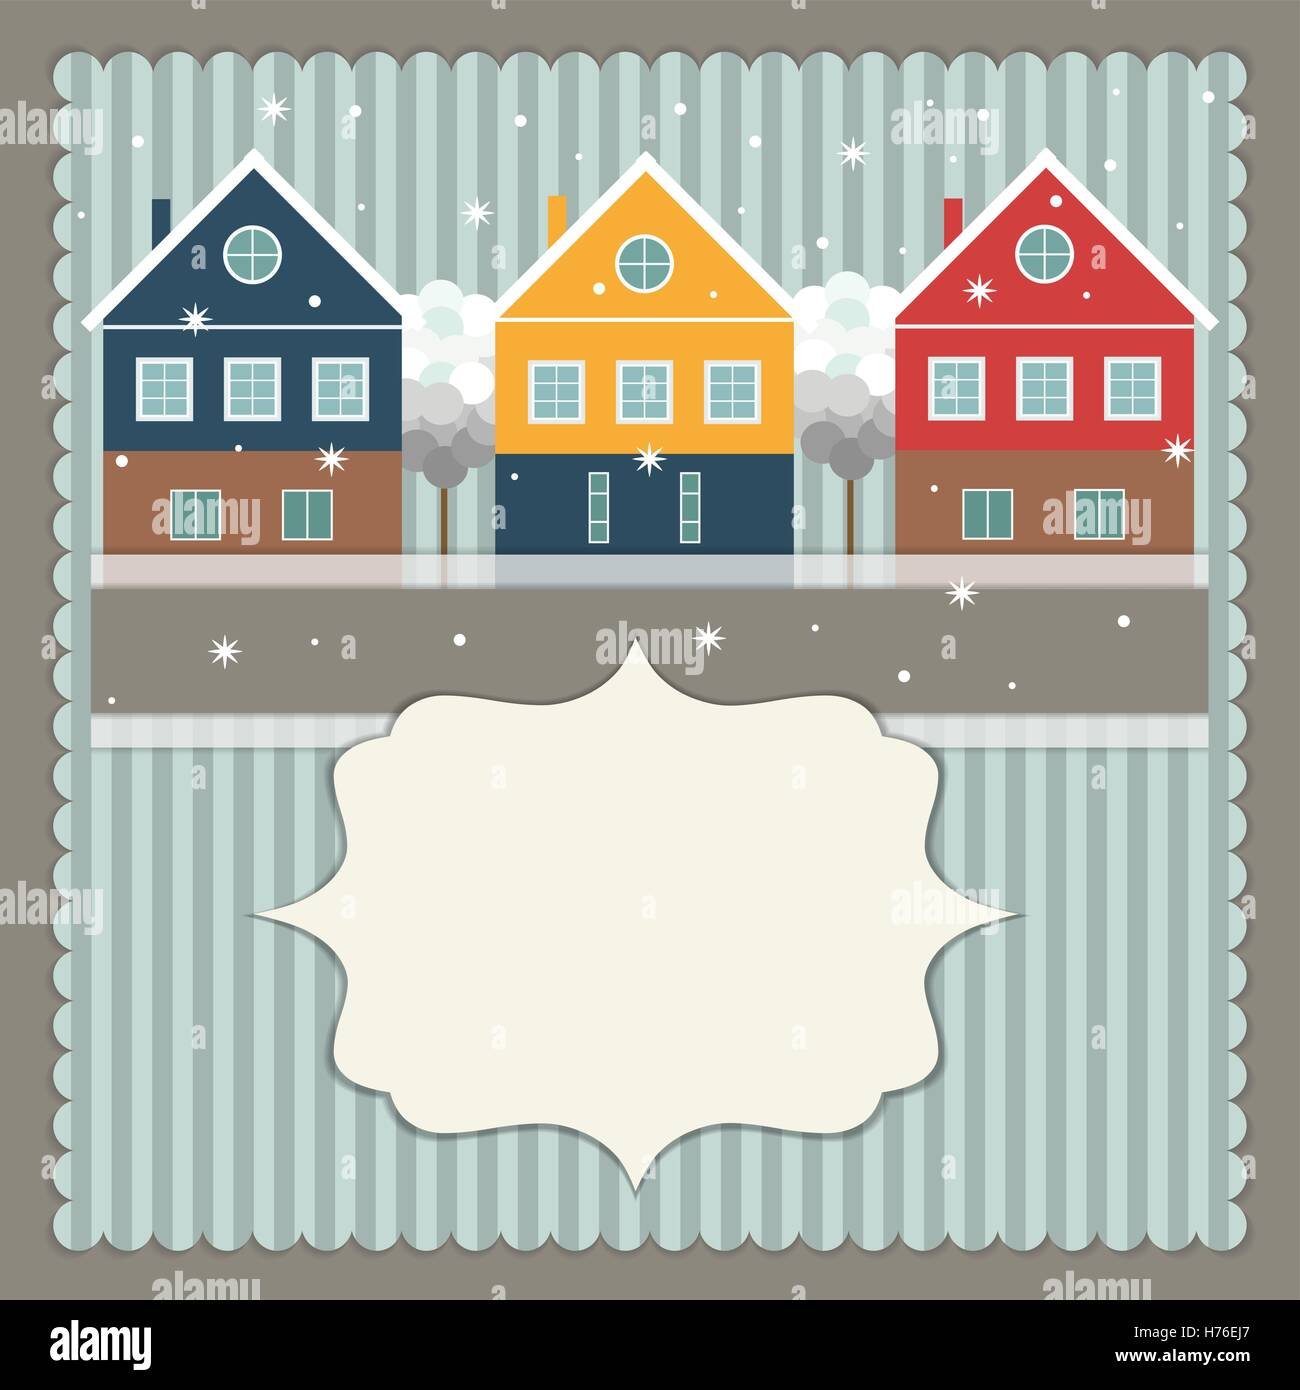 Real estate christmas card colorful stock photos real estate real estate christmas card stock image m4hsunfo